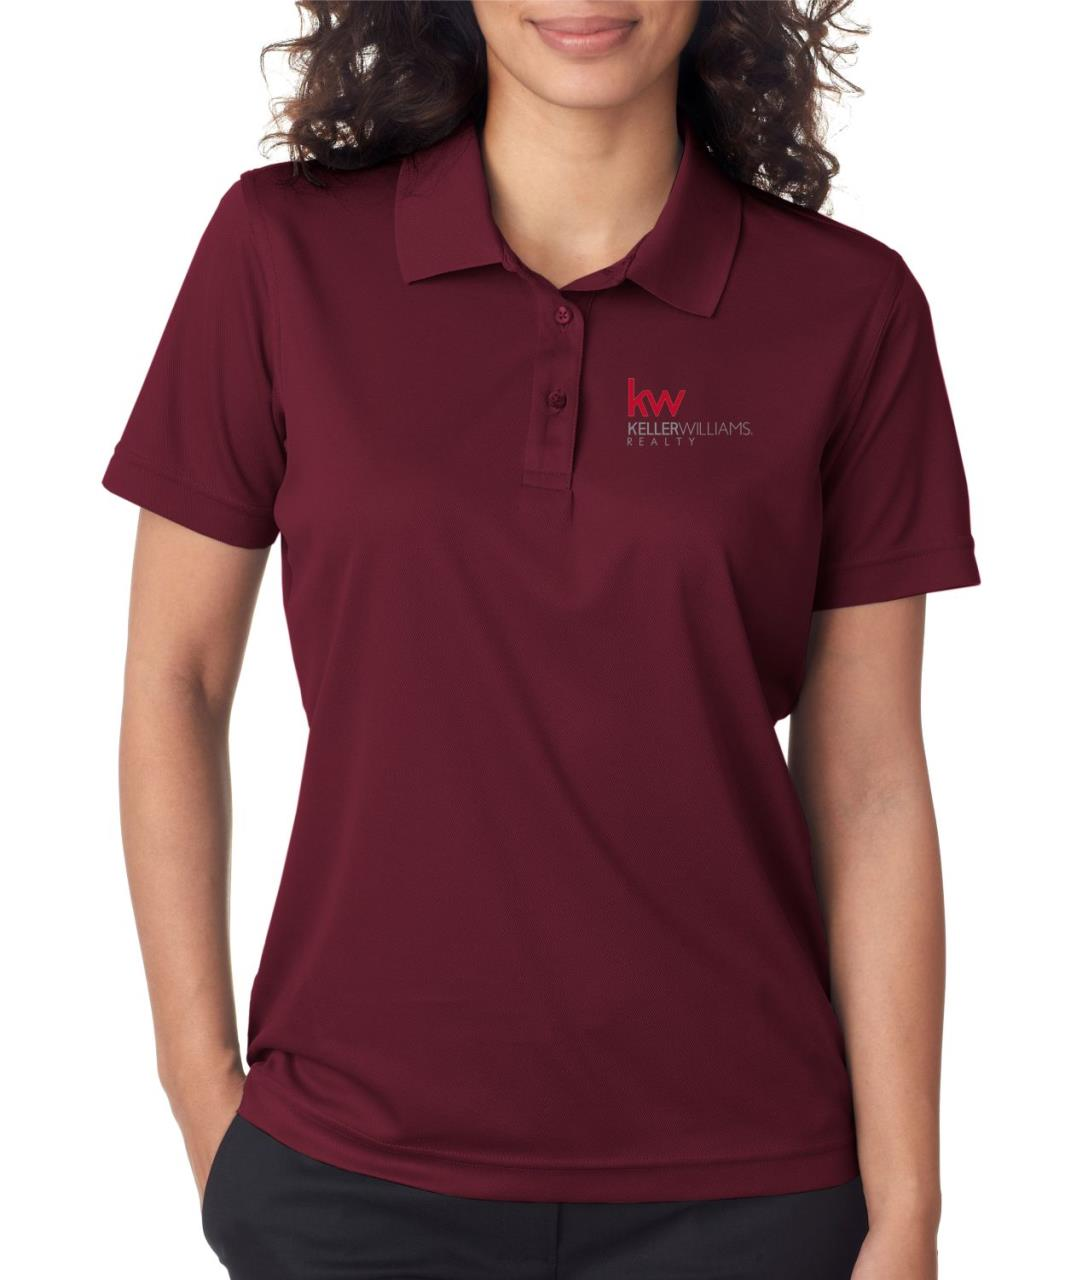 Ladies' Cool & Dry Mesh Piqué Polo